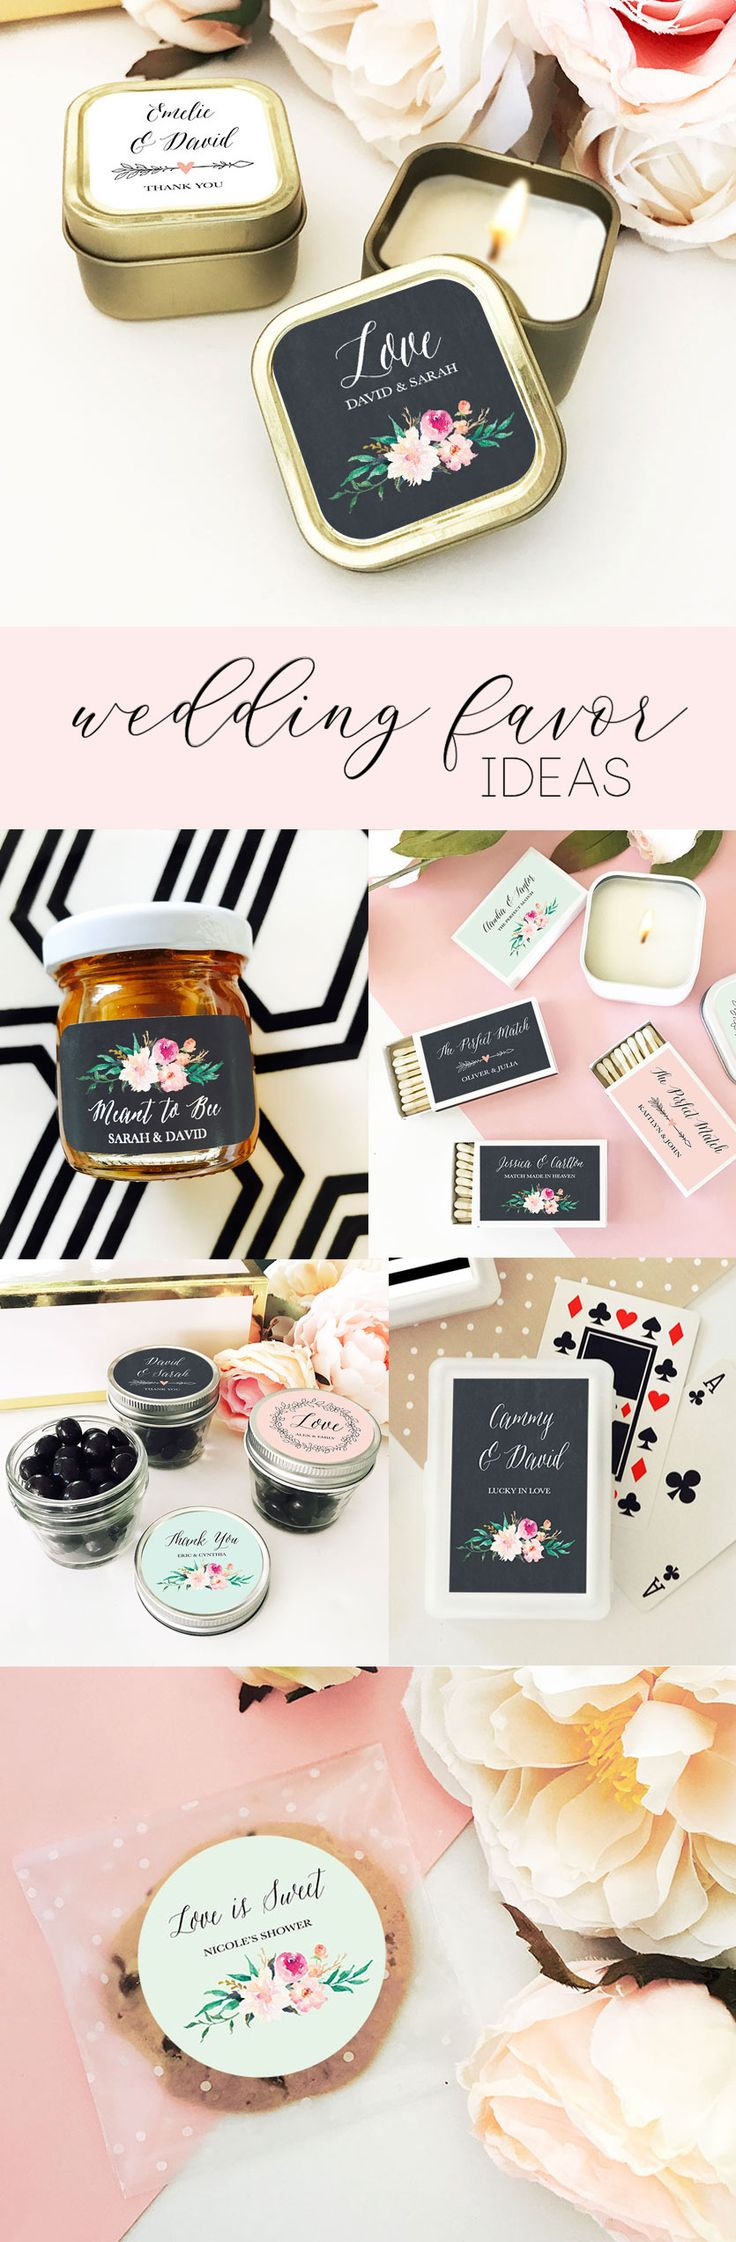 195 best Personally♥︎Personalized images on Pinterest